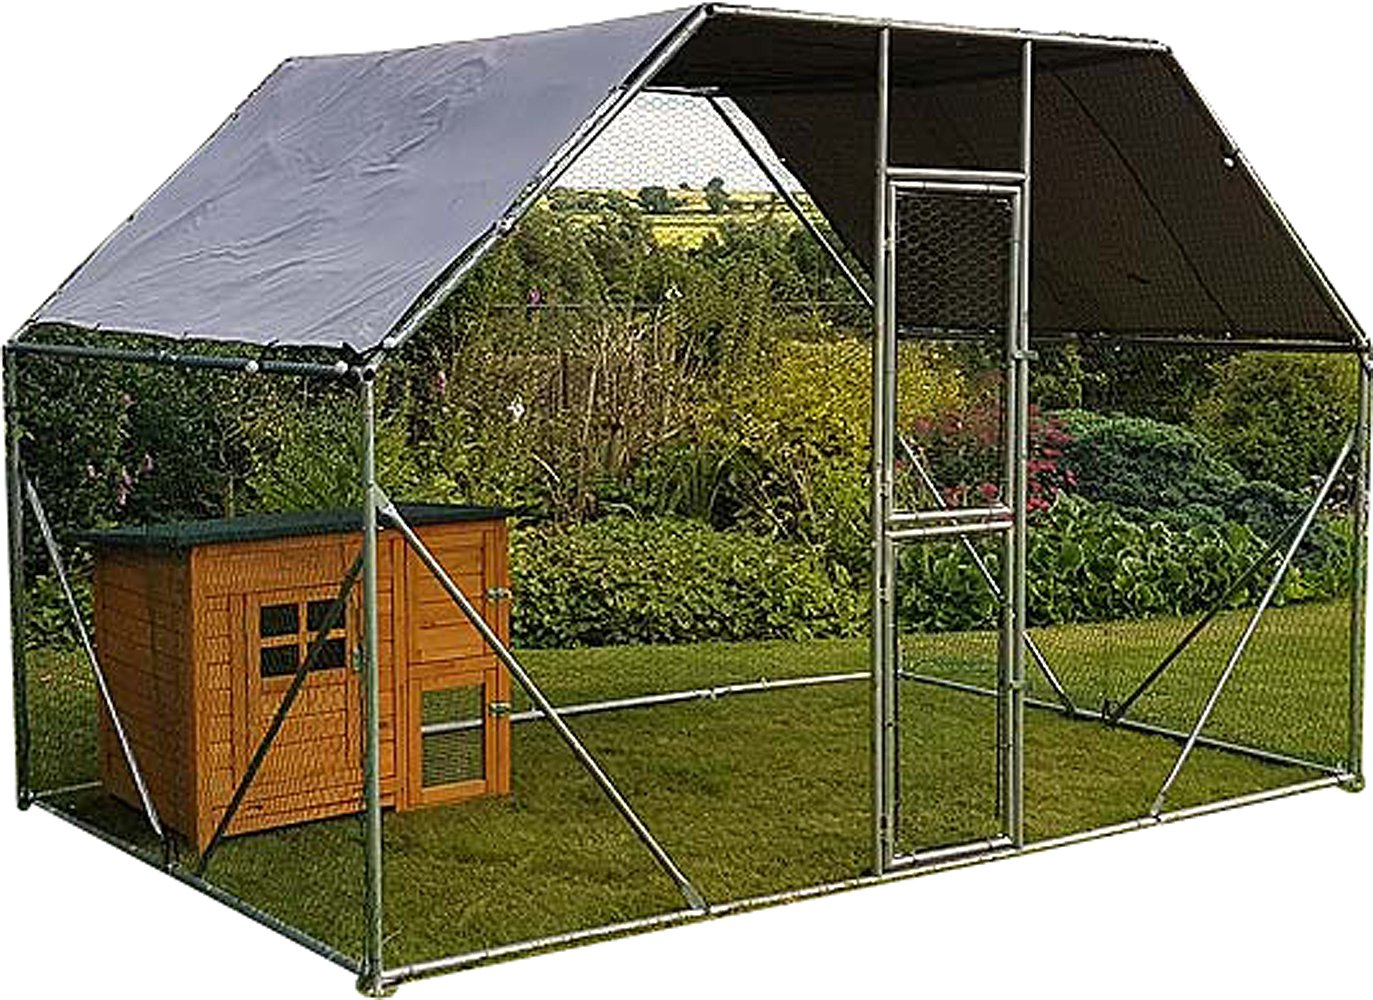 2m x 3m Walk in Dog Kennel Pen Run Plein air Exercice Cage - Cage 04 FR FeelGoodUK